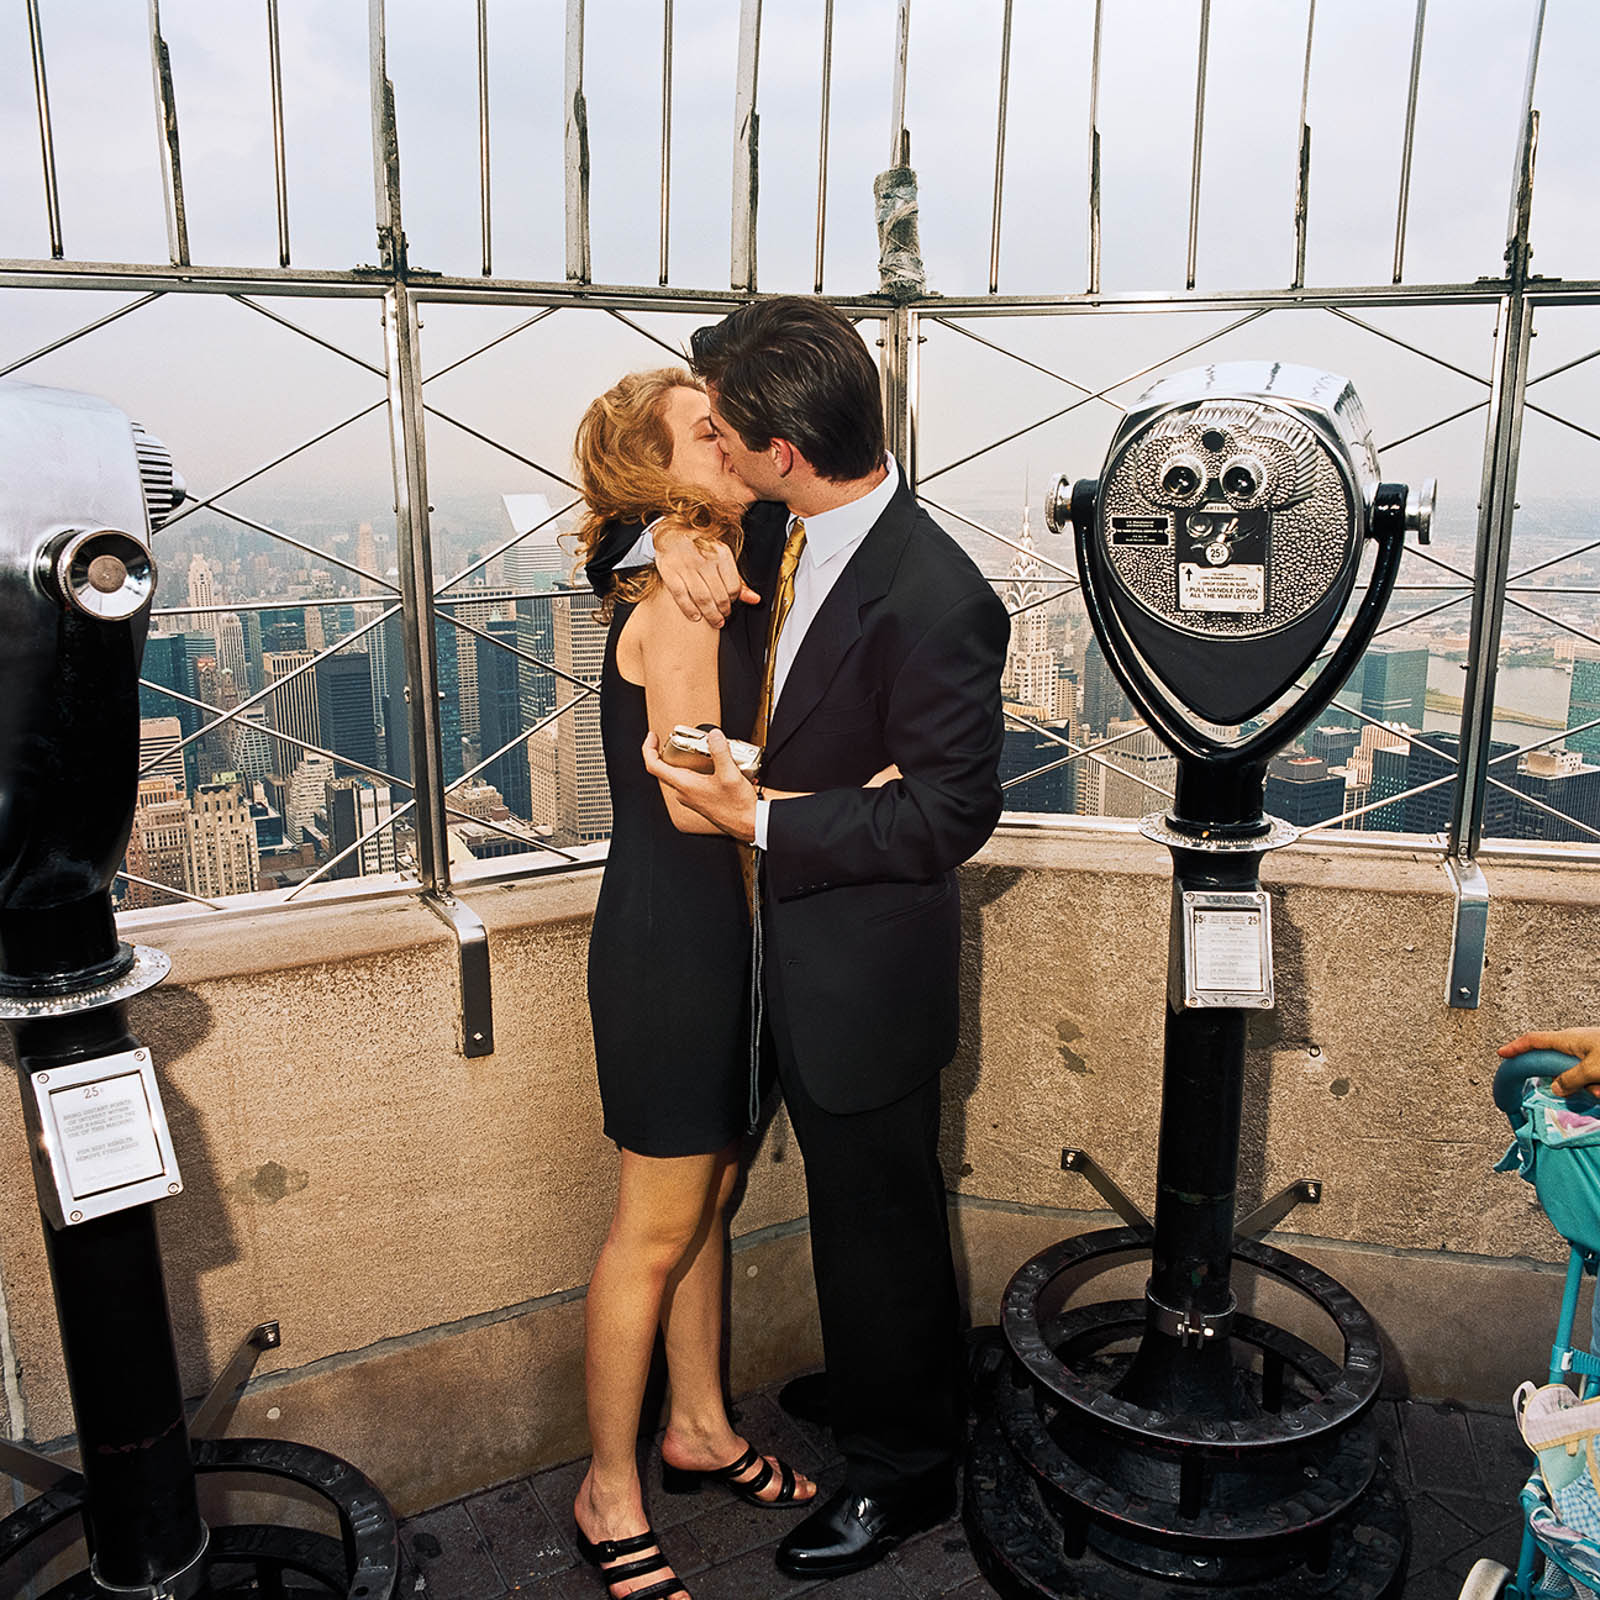 Couple Kissing Atop Empire State Building, New York City 2000